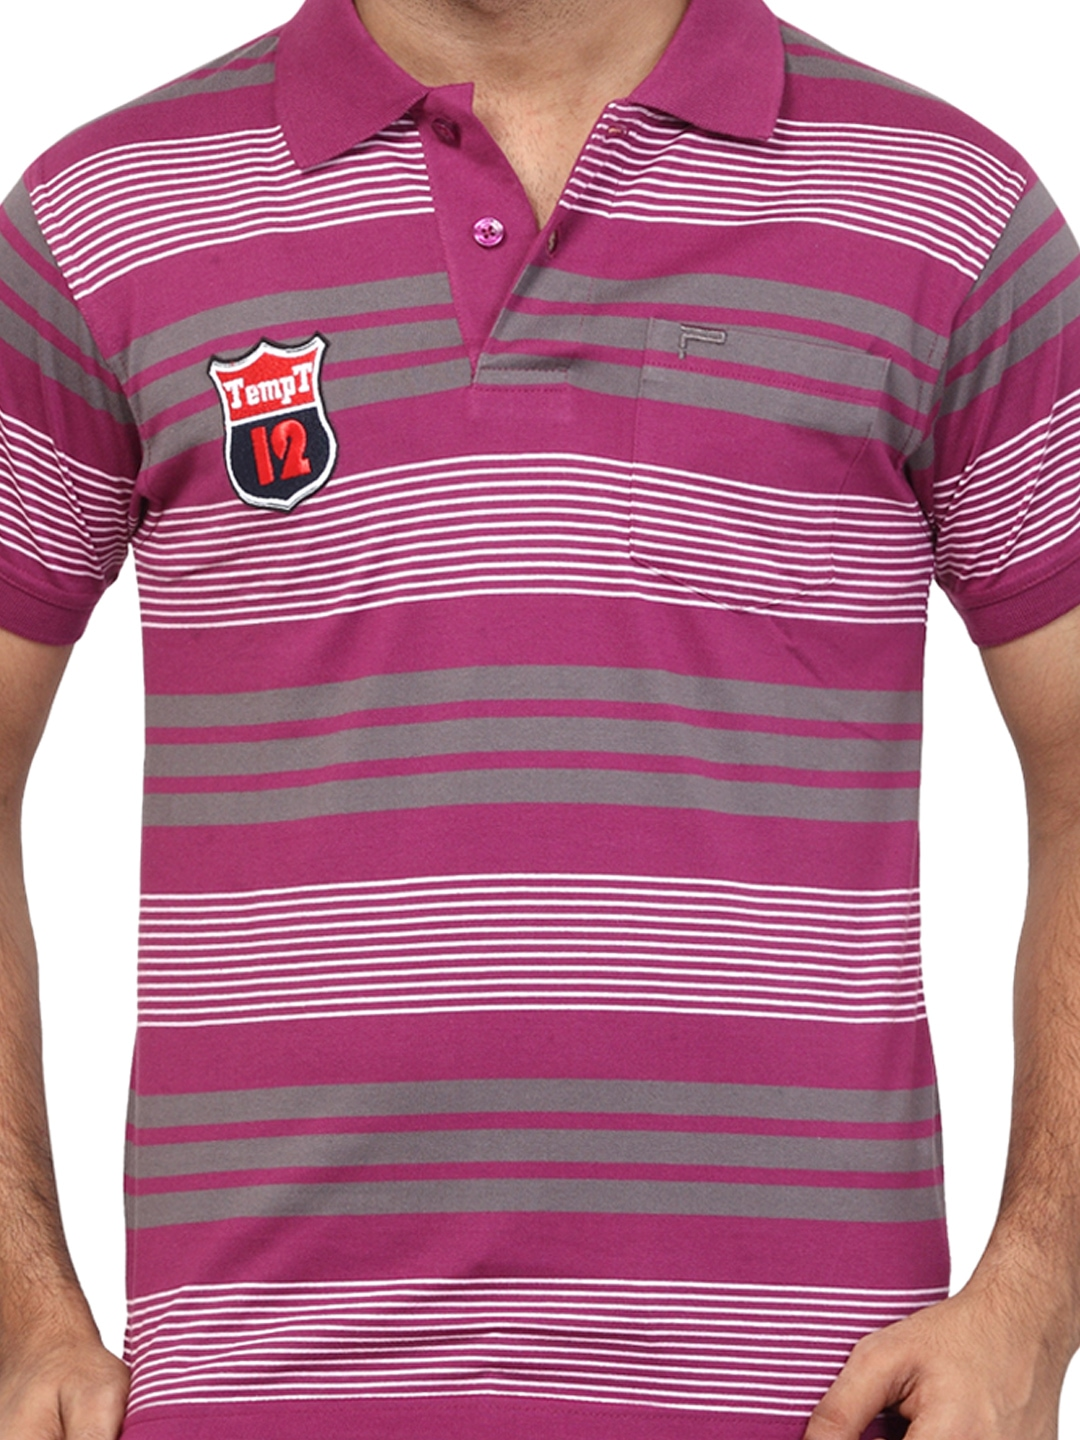 Myntra orange valley purple striped slim fit polo t shirt for Purple and black striped t shirt